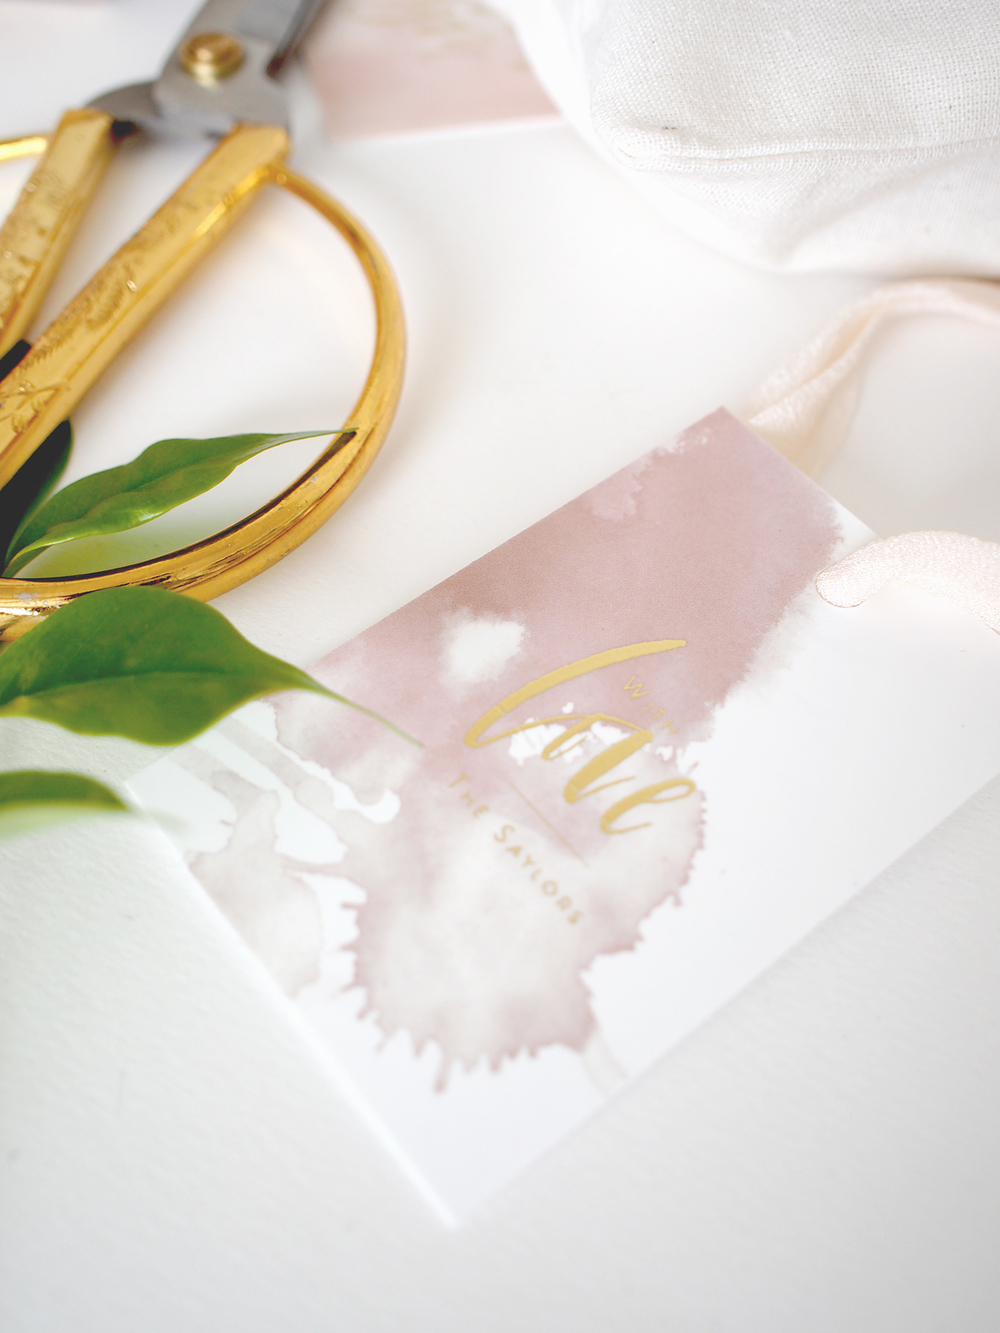 Custom gift tags with gold foil for wedding favors or gifts | A Fabulous Fete